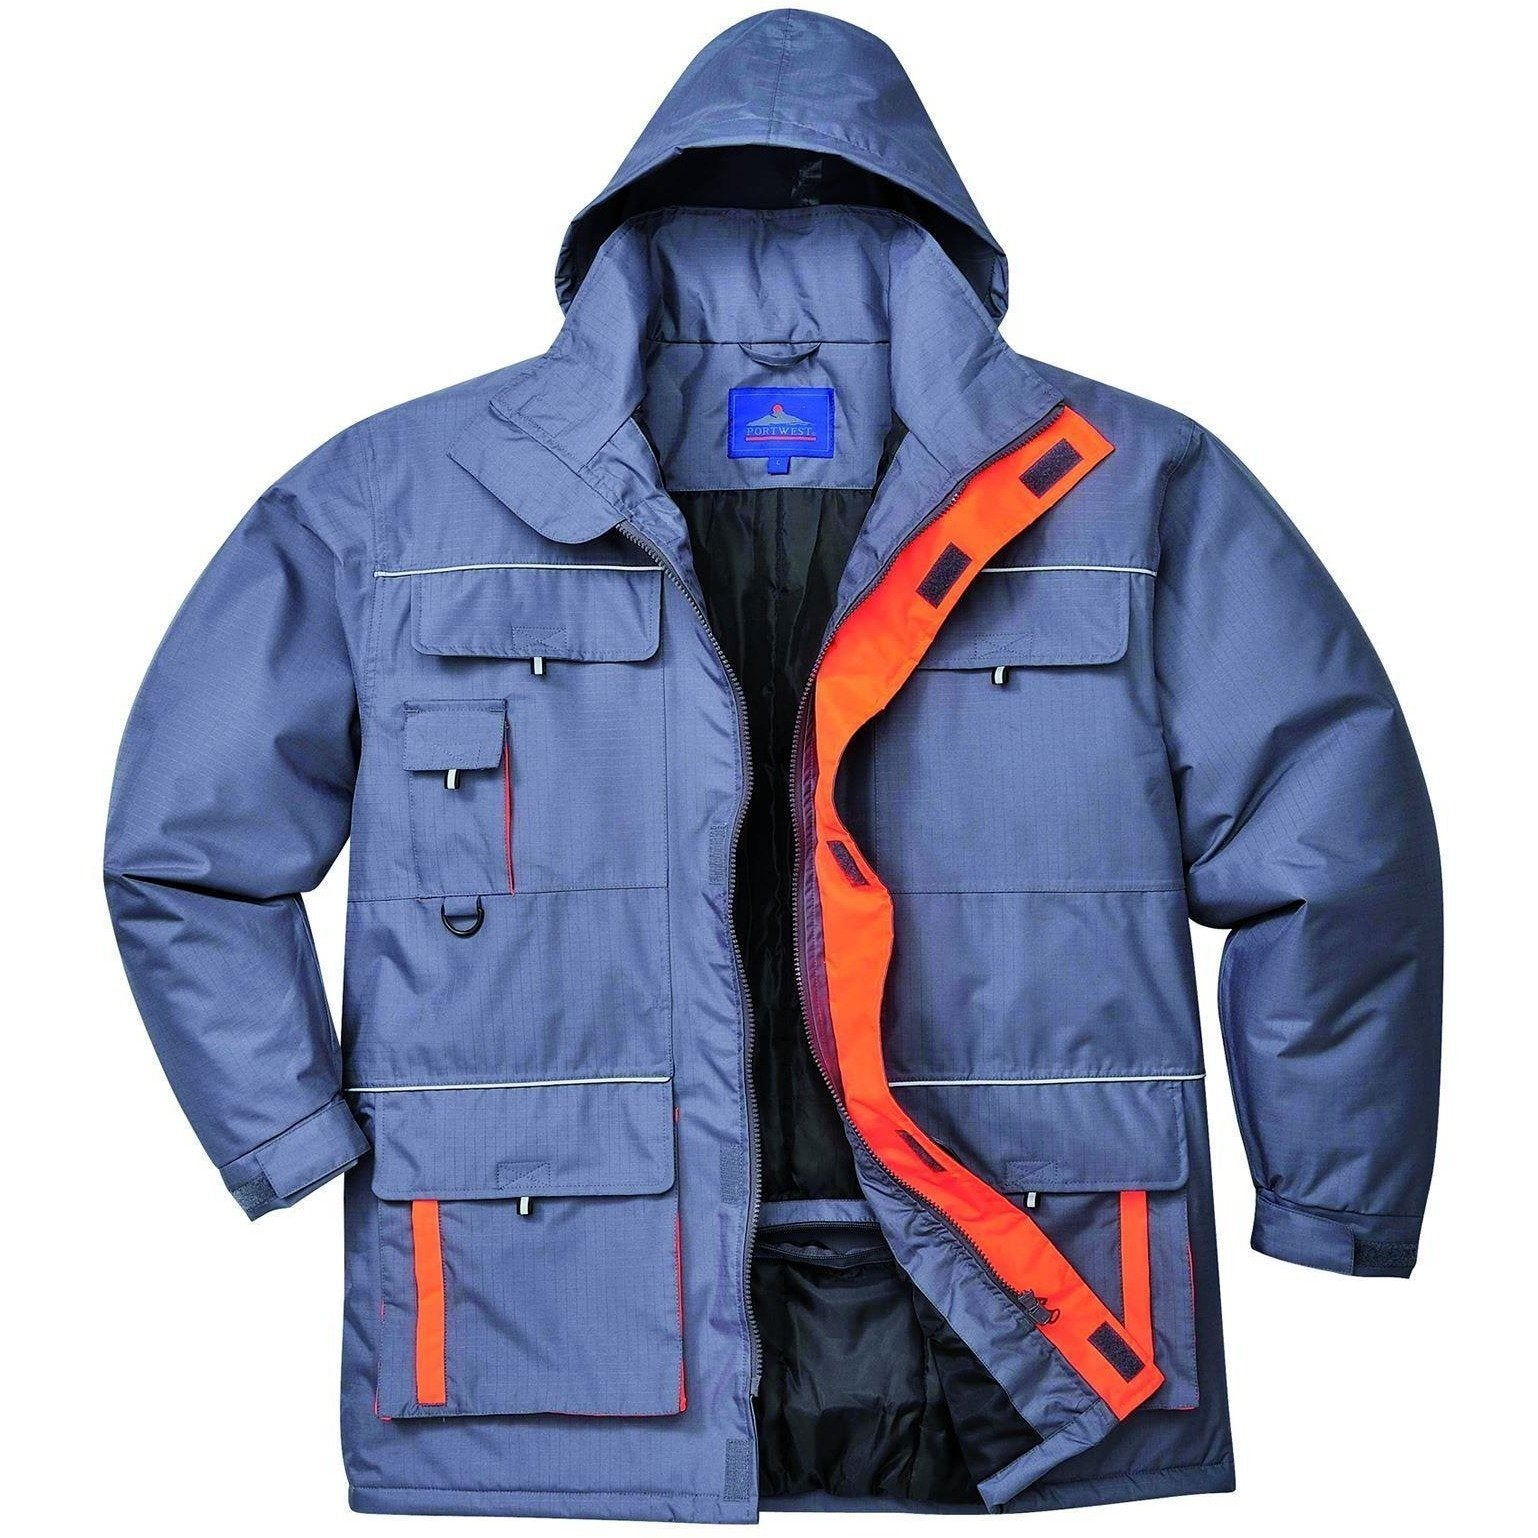 Portwest Texo Contrast Rain Jacket TX30 - reid outdoors